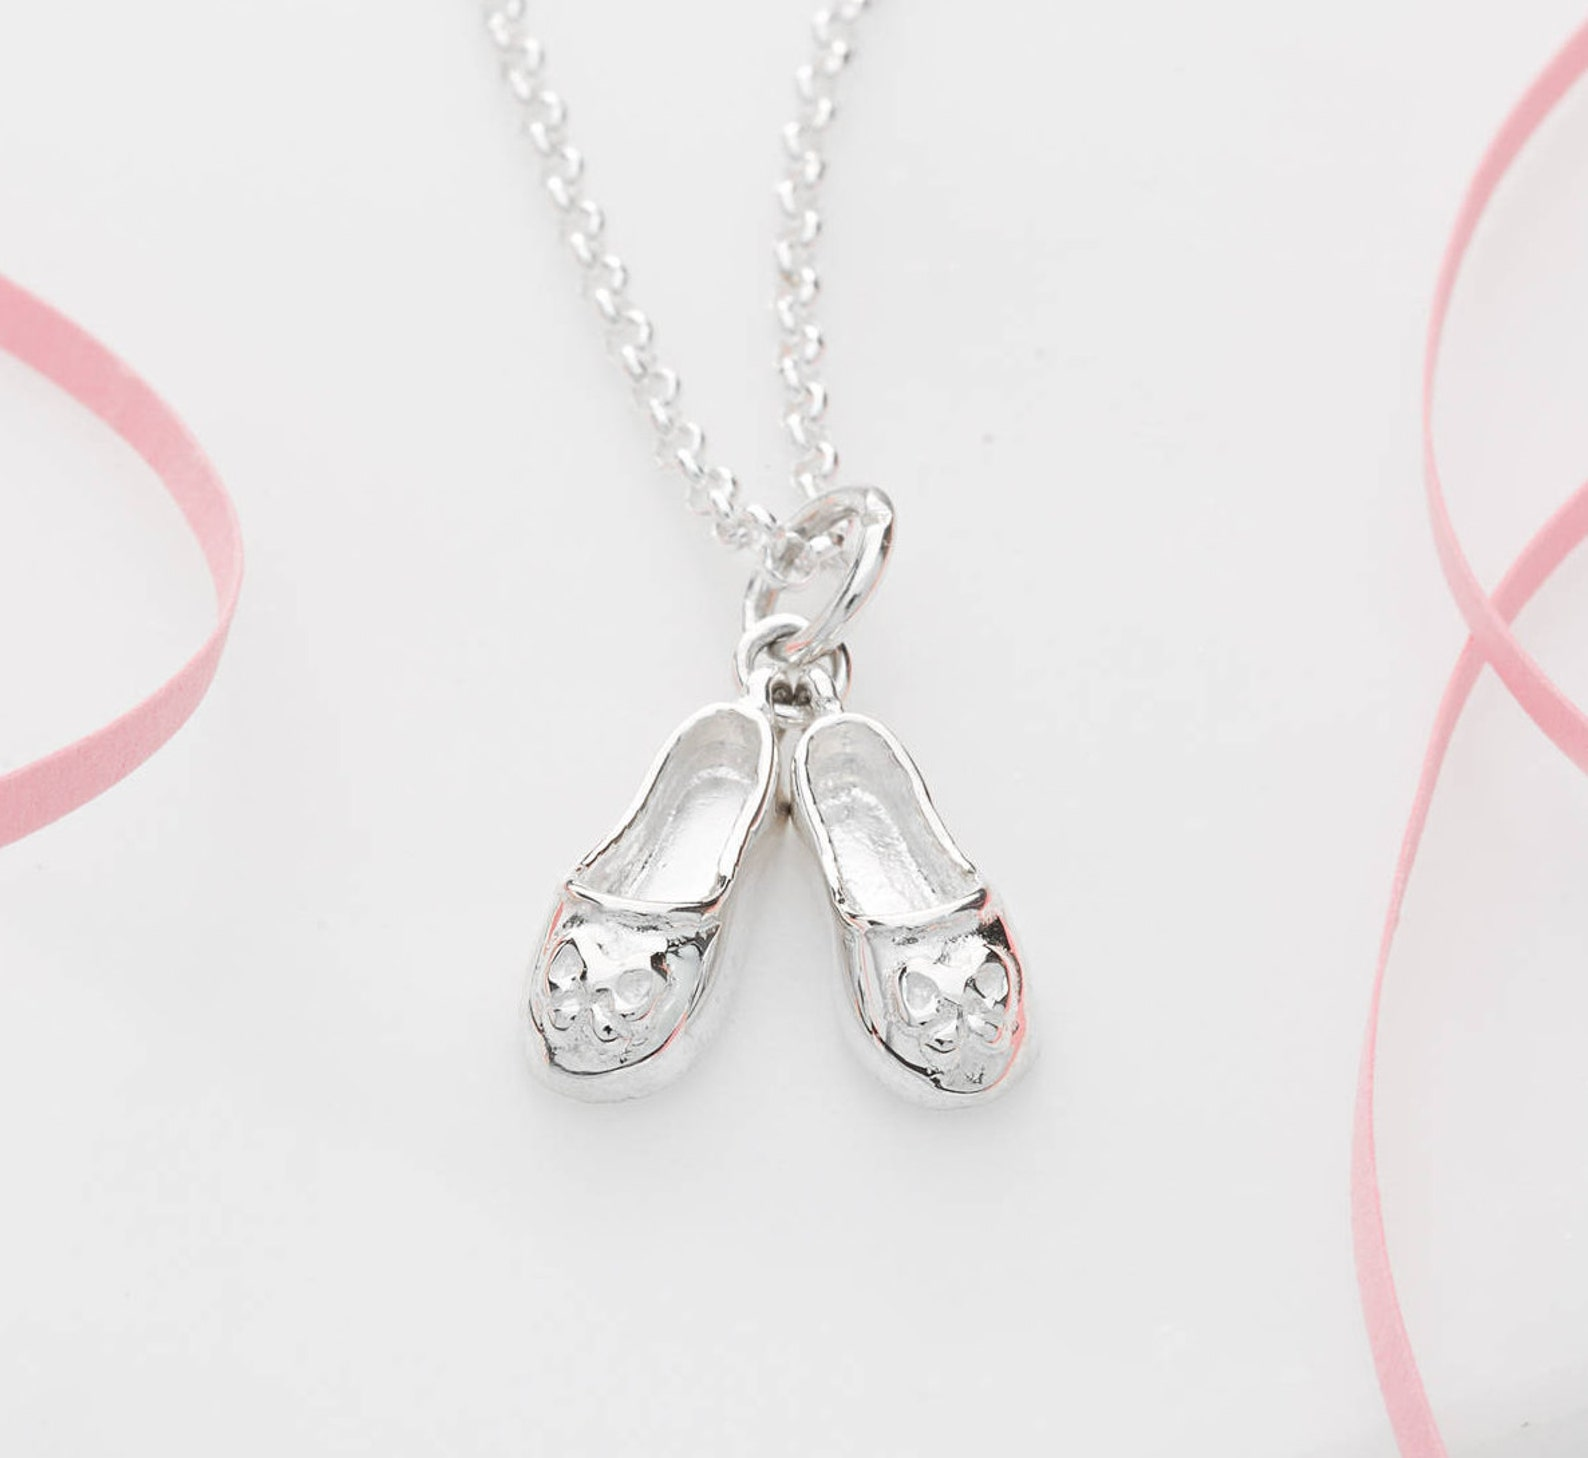 sterling silver ballet shoes necklace - gifts for girls - ballet shoes pendant - ballet shoes necklace - silver ballet shoes cha